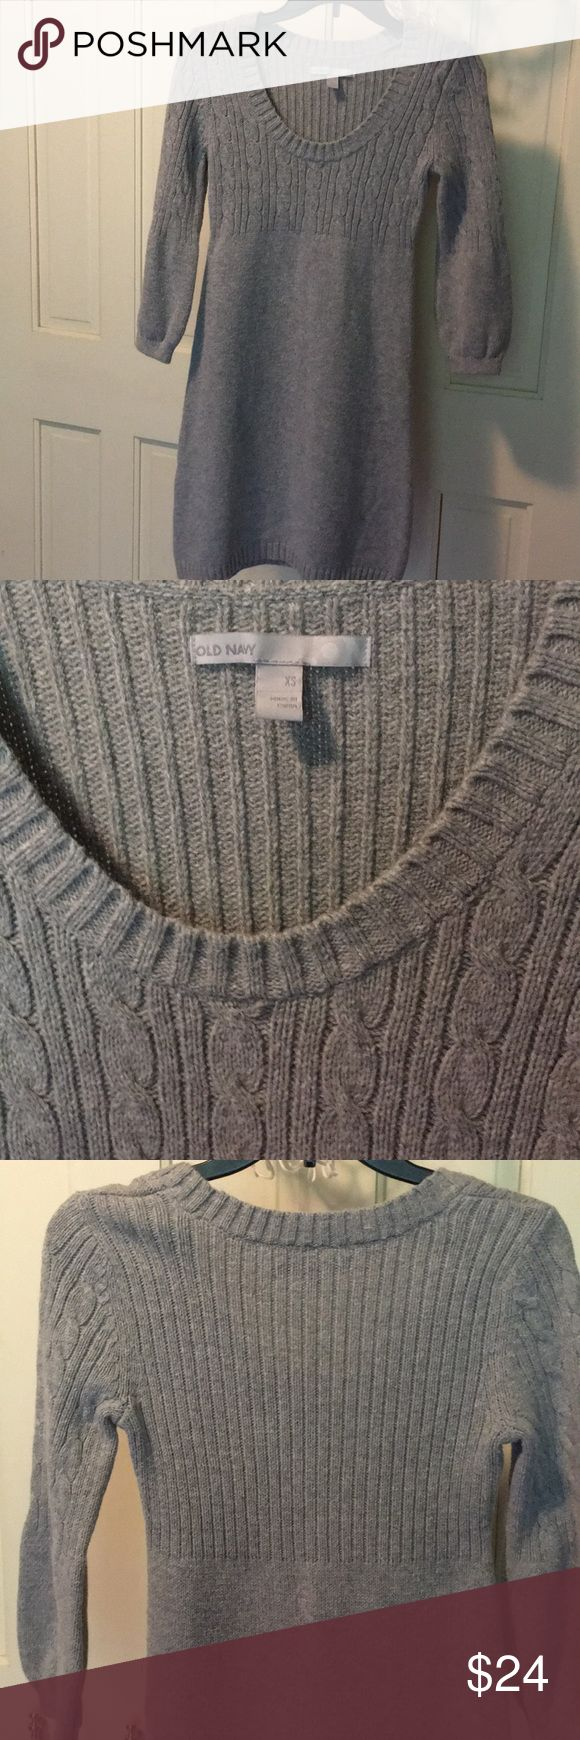 💕cozy, sweater dress Lovely, cozy, warm sweater dress. Cable knit top with sleek bottom. Worn once on Christmas Day. Looks great w a pair of boots, tights, and scarf. No smoking home. 🔹offers welcome. 🔹bundle for greater discount. Old Navy Dresses